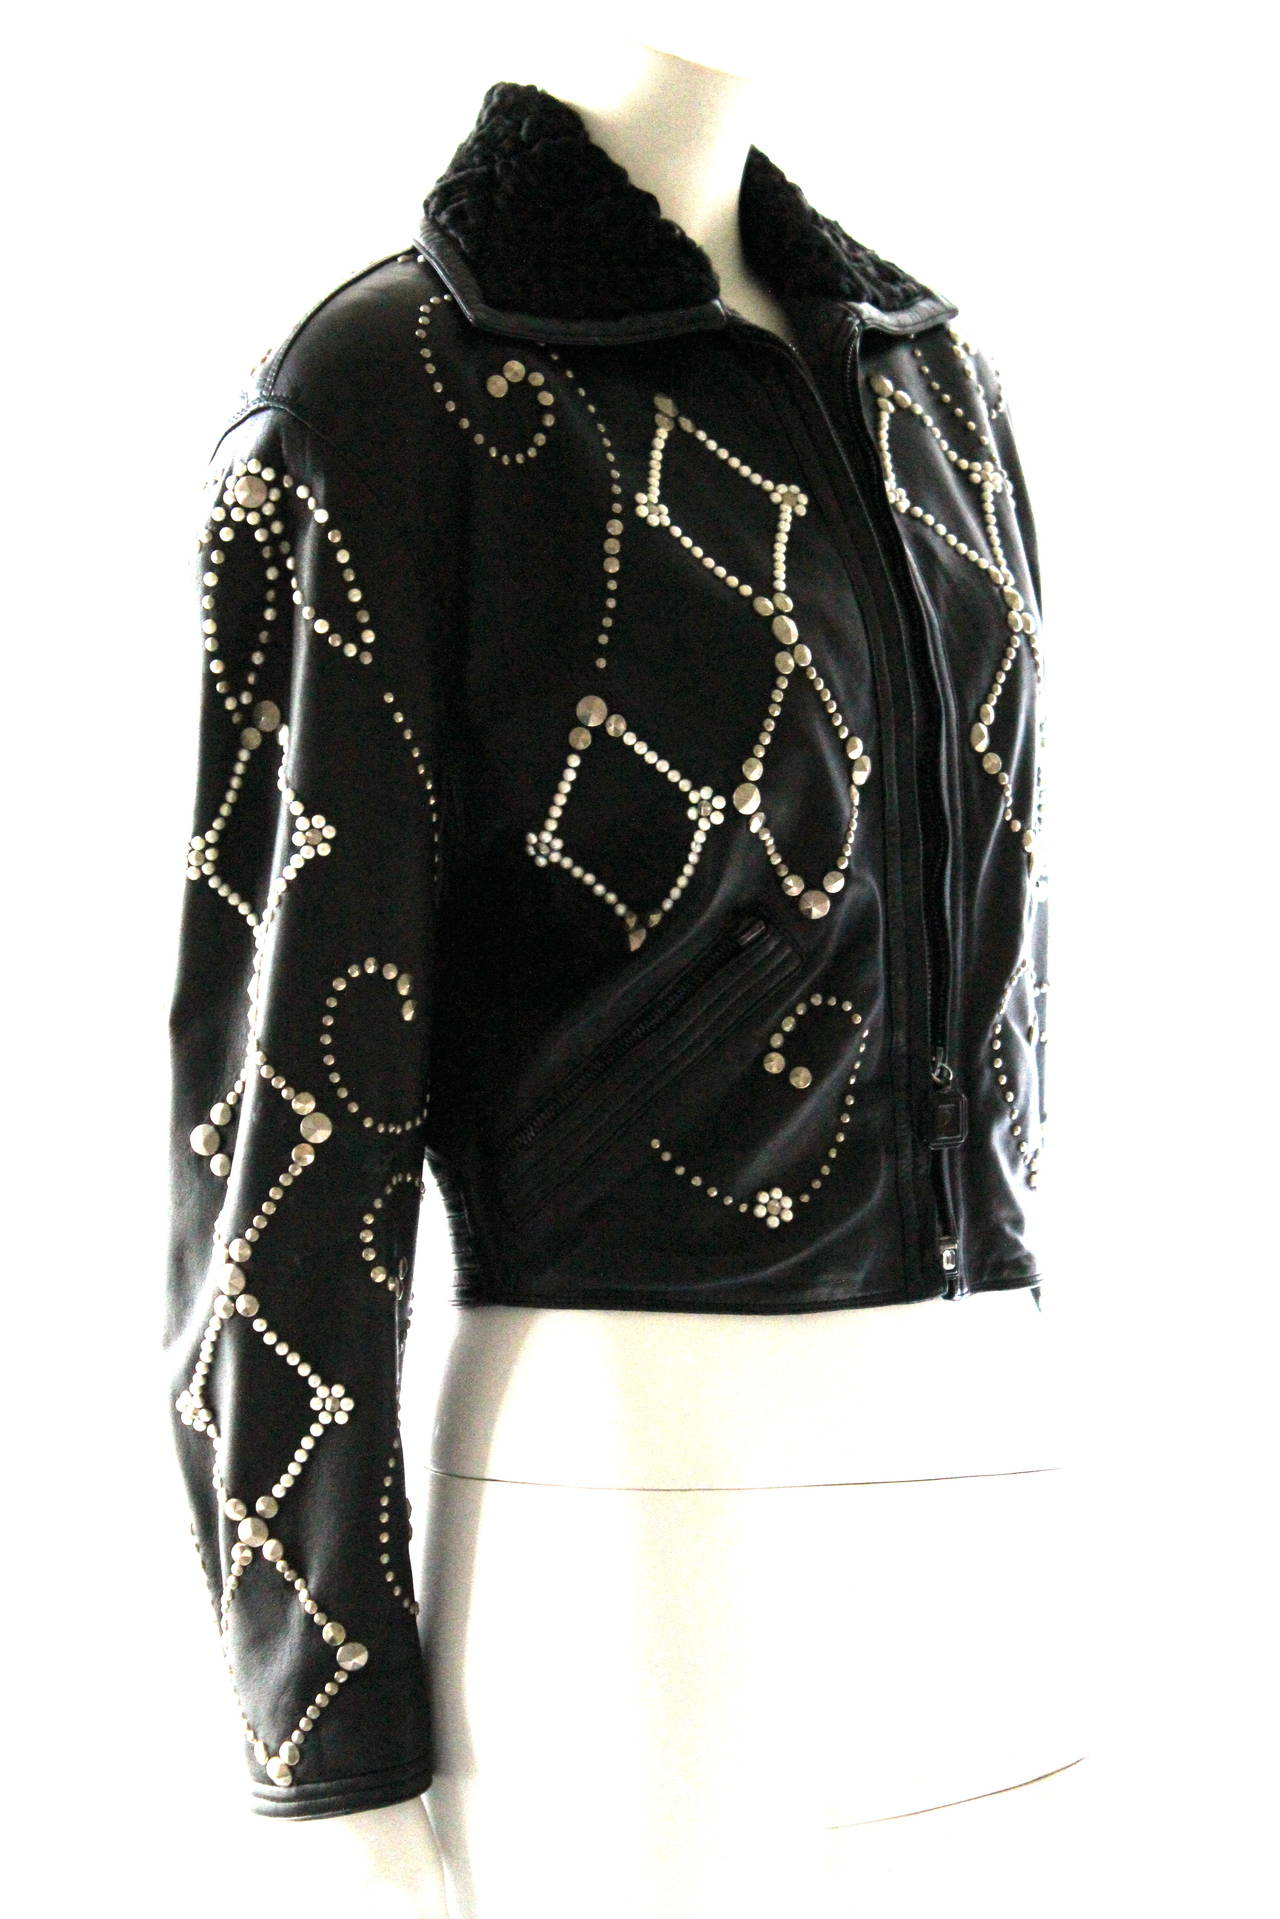 Gianni Versace Couture 1991 Madonna and Child Runway Leather Jacket 4